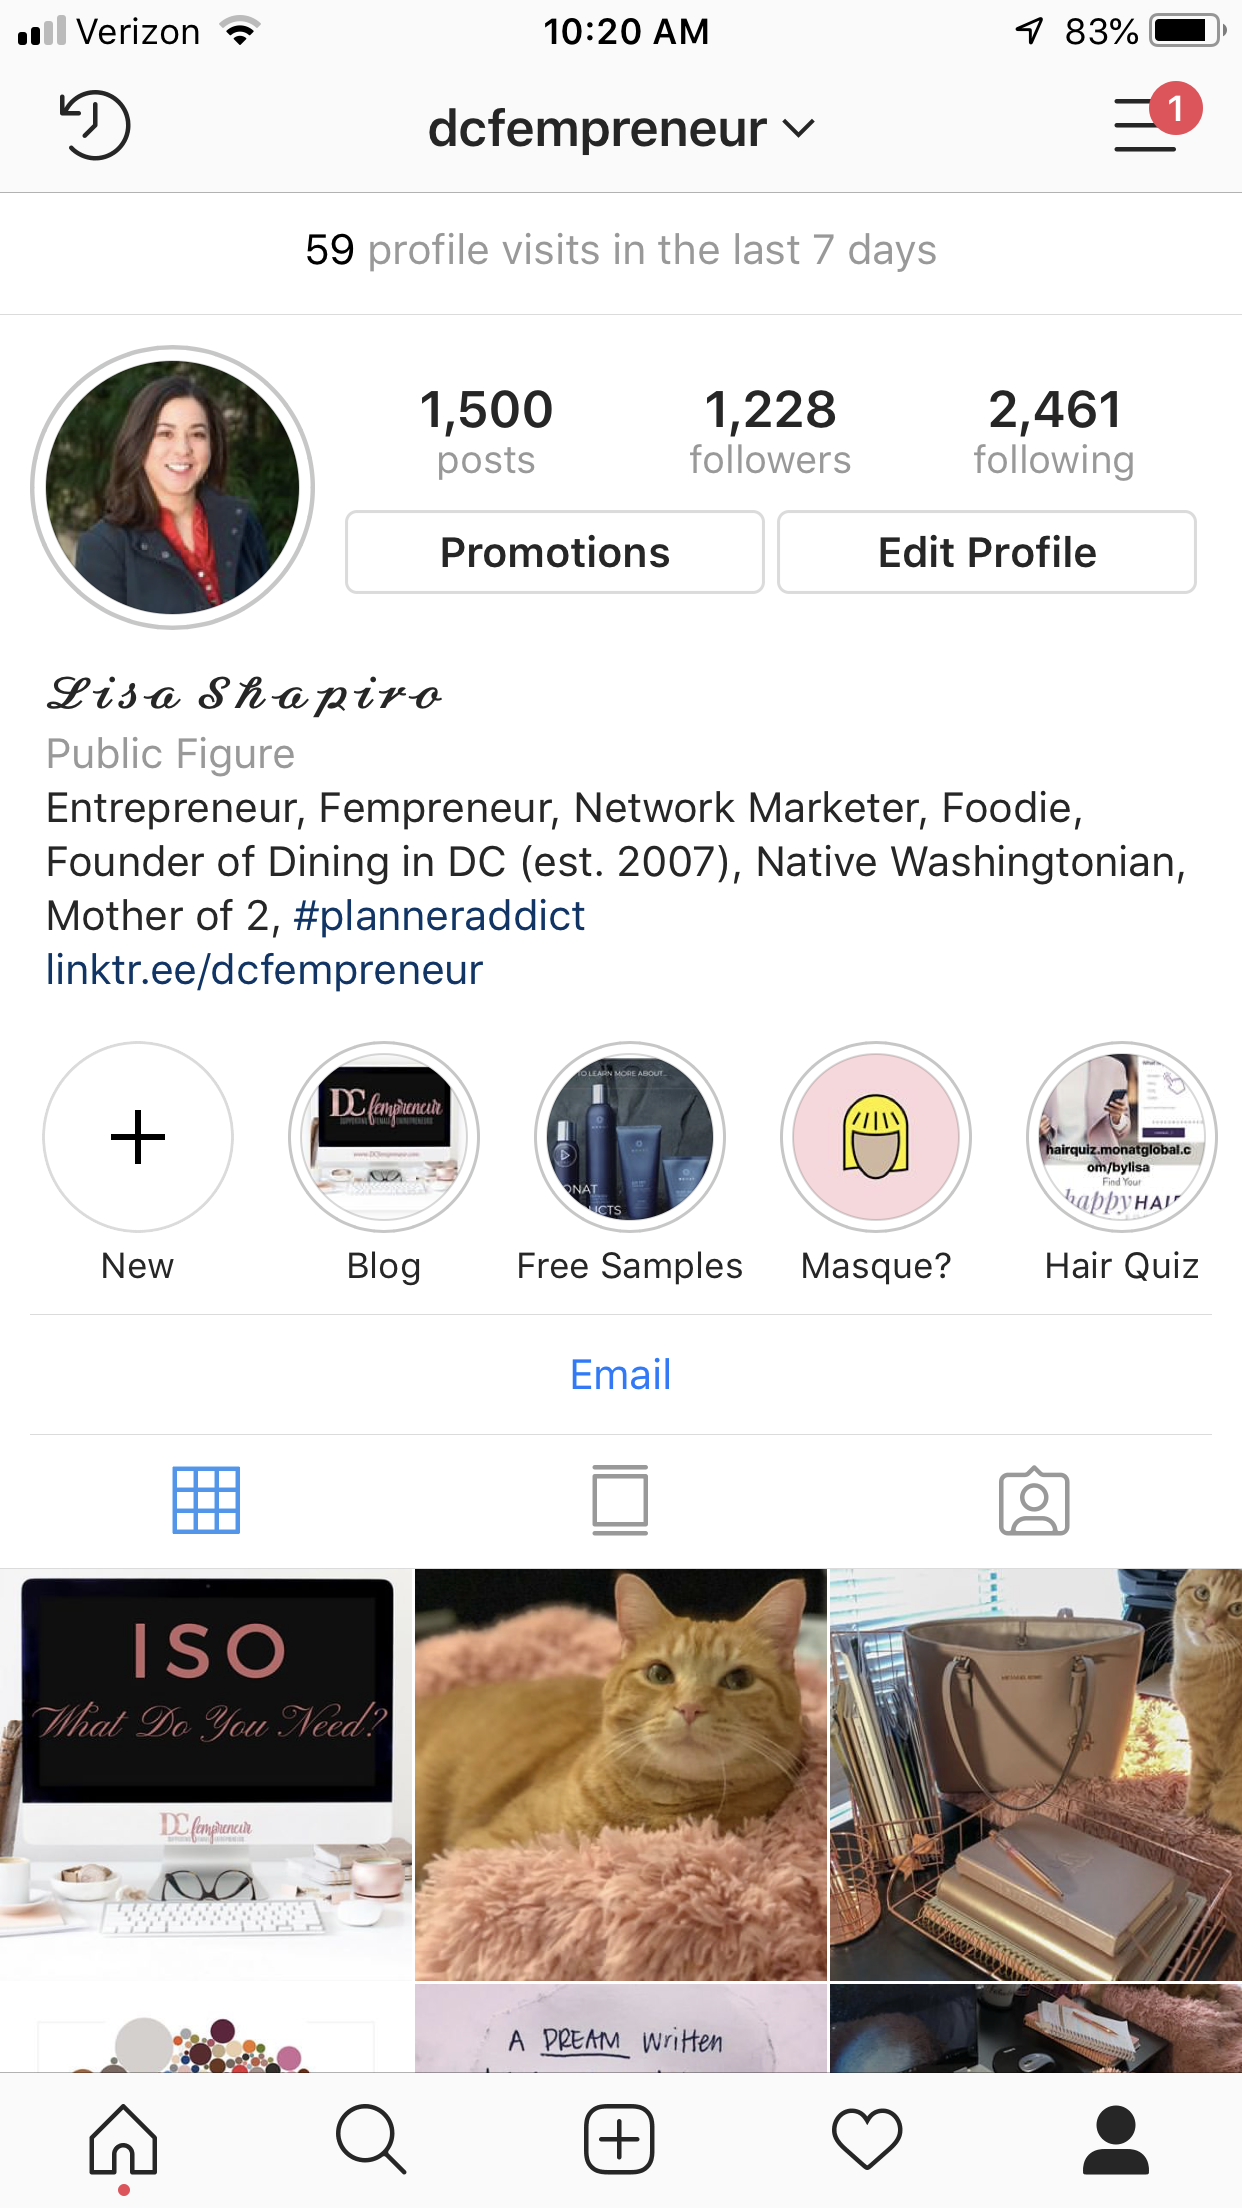 How to Personalize the Font for Your Instagram Name